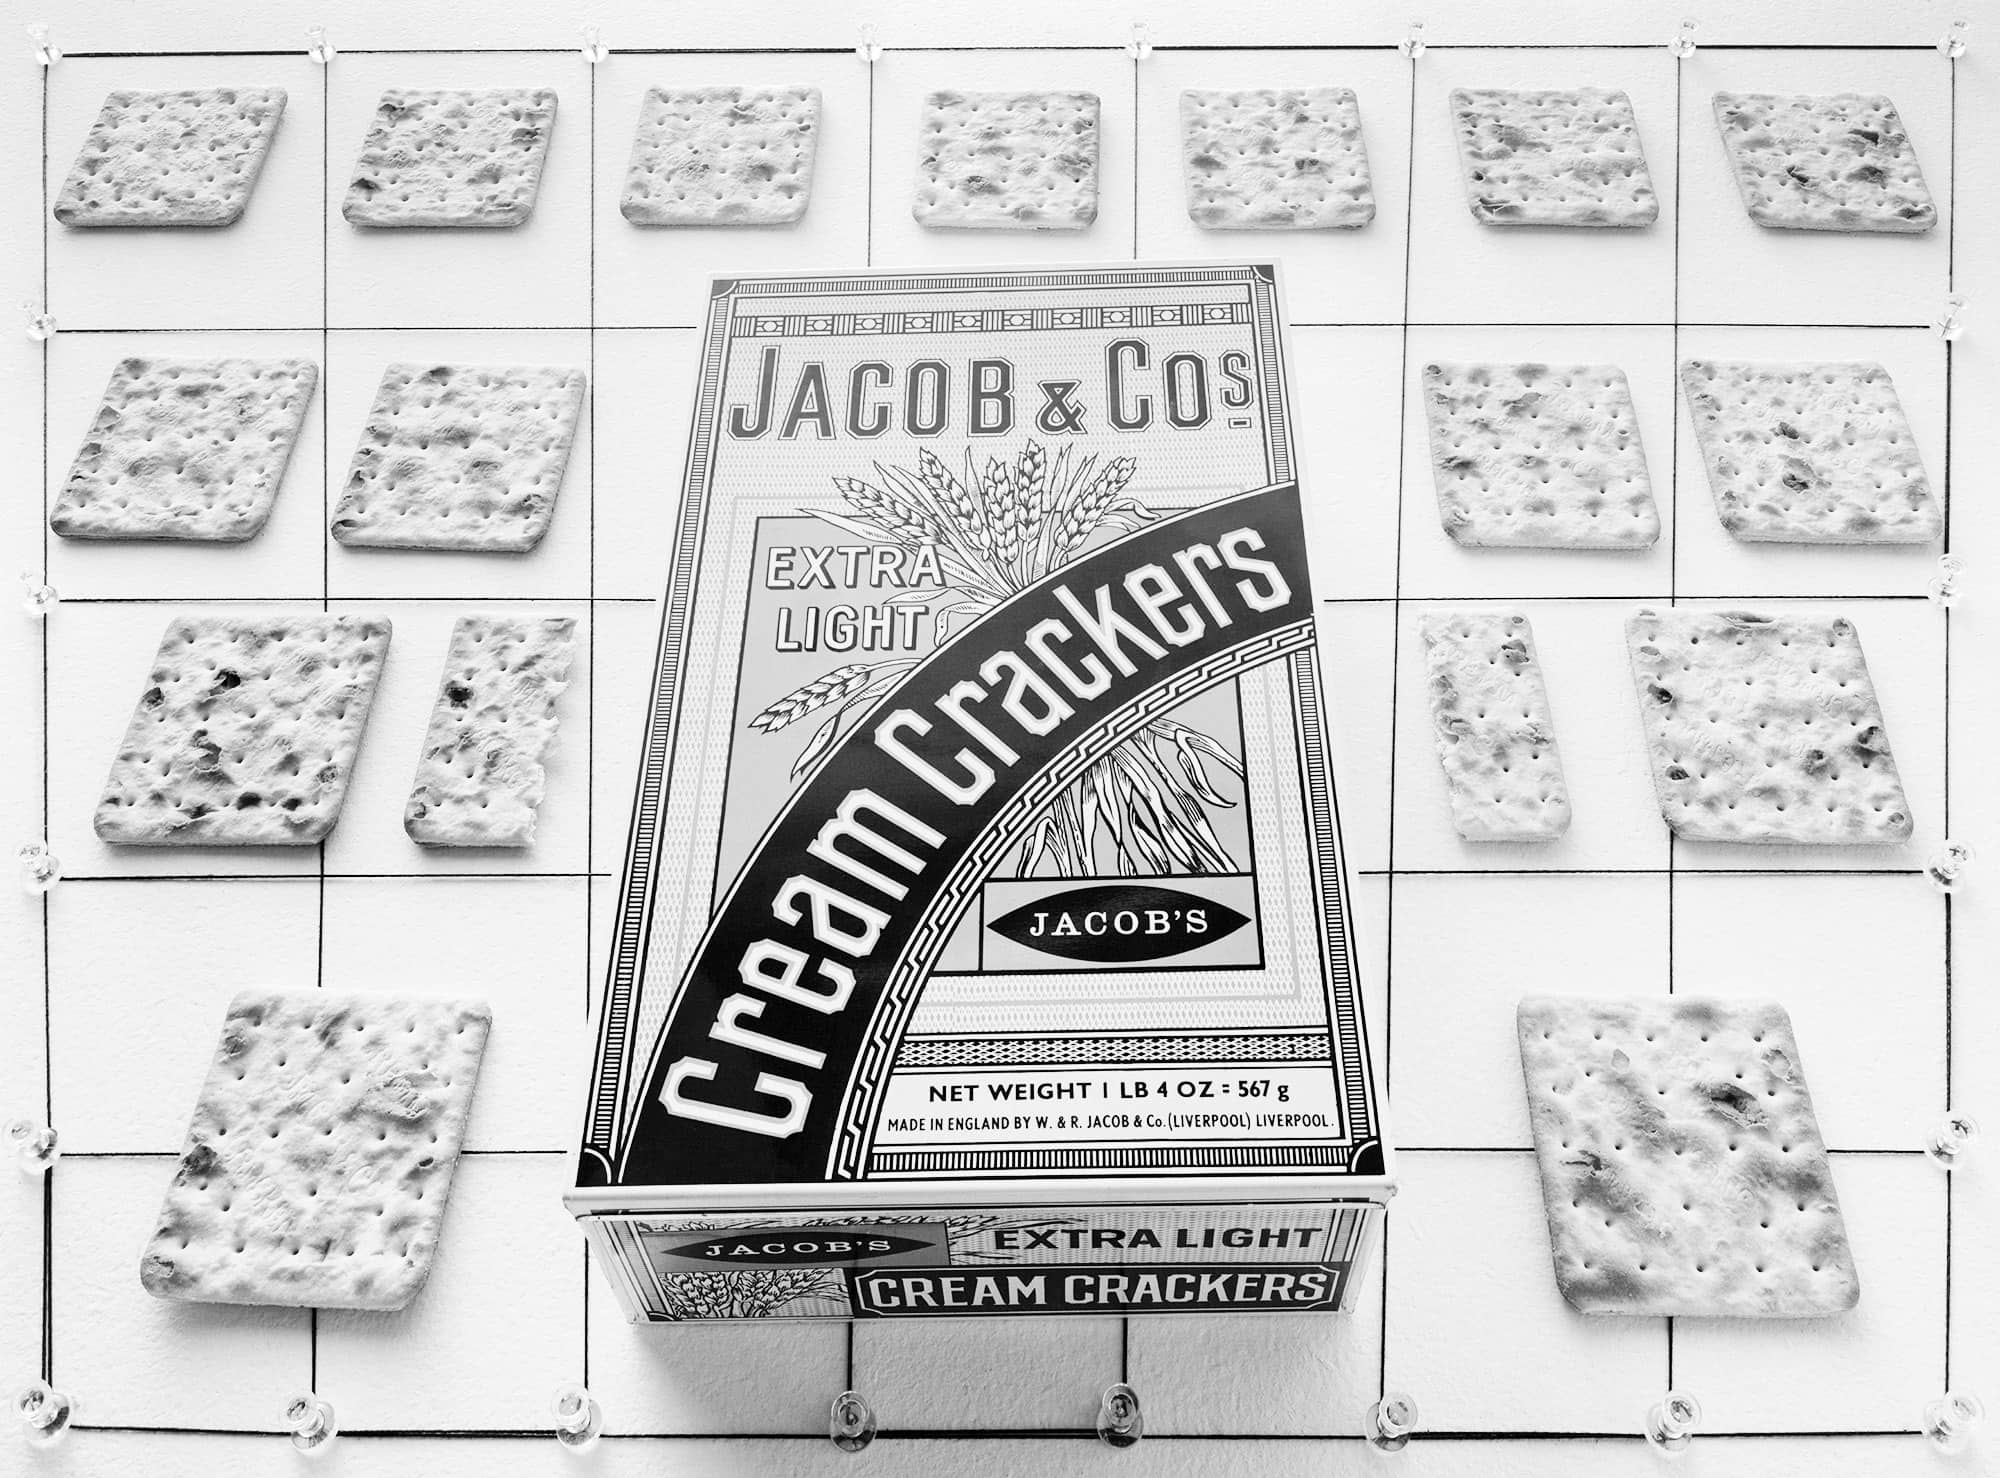 Jacob Cream Crackers, 1977